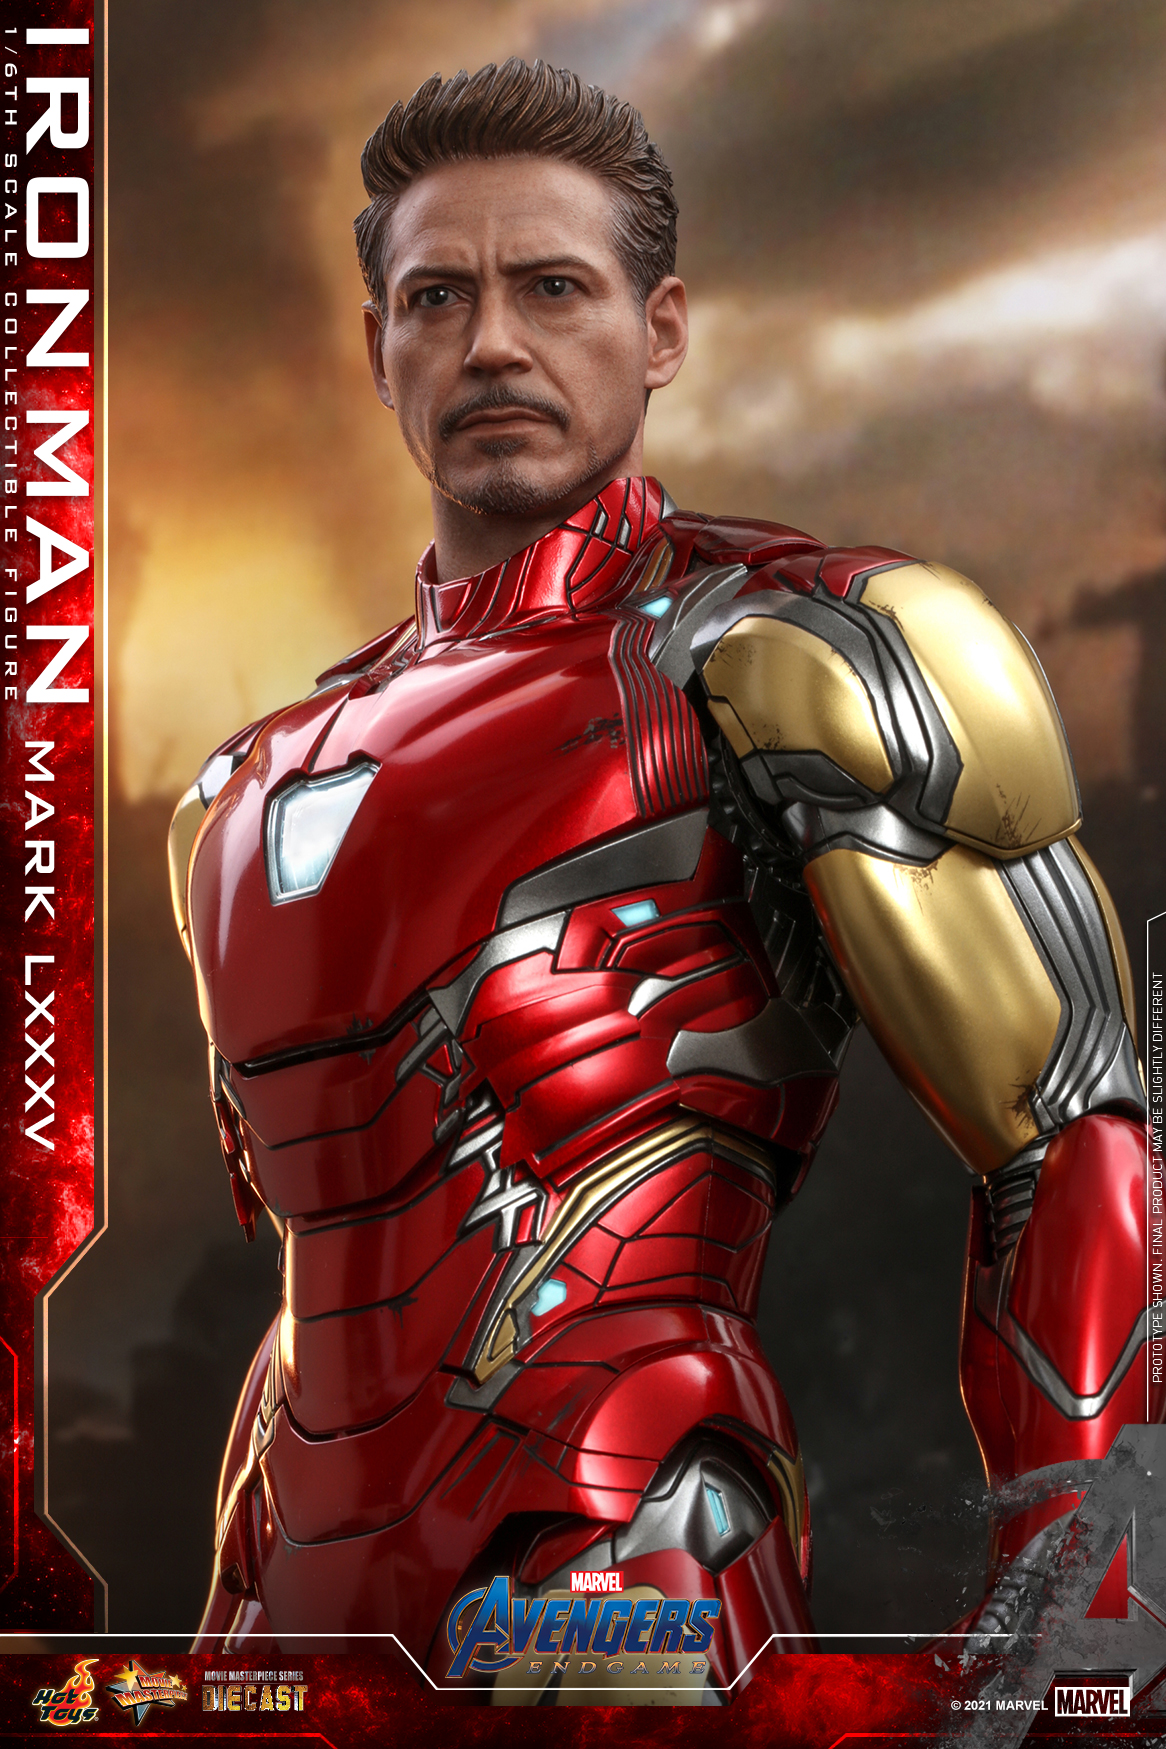 Hot Toys Avengers Endgame Iron Man Mark LXXXV collectible figure_updated head sculpt_PR2_